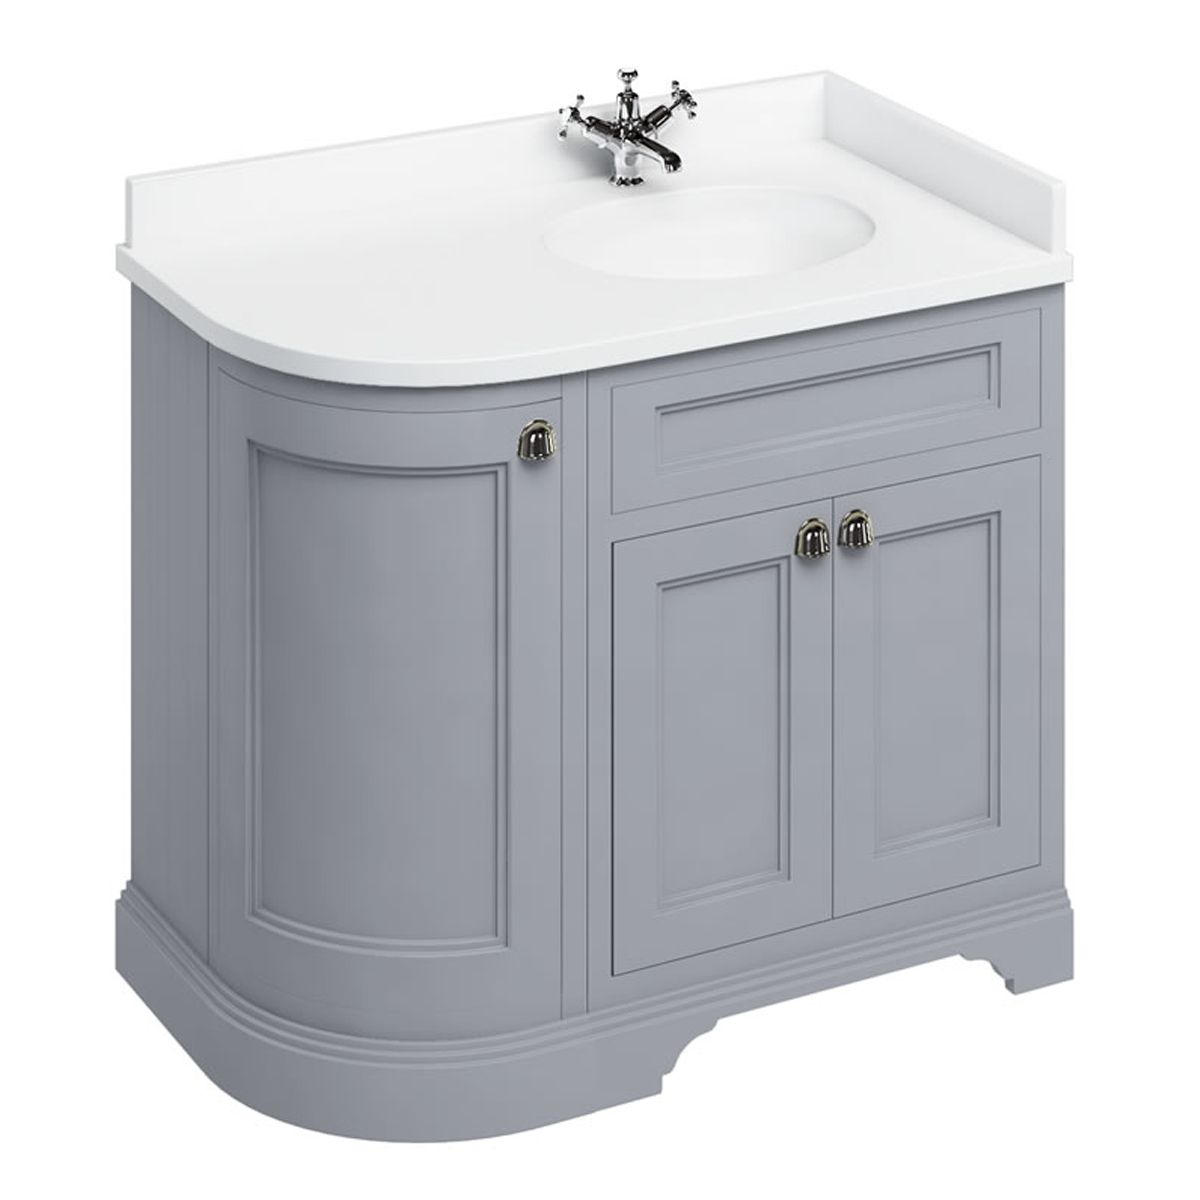 Burlington Classic Grey Freestanding Right Hand Curved Corner Vanity Unit 1340mm